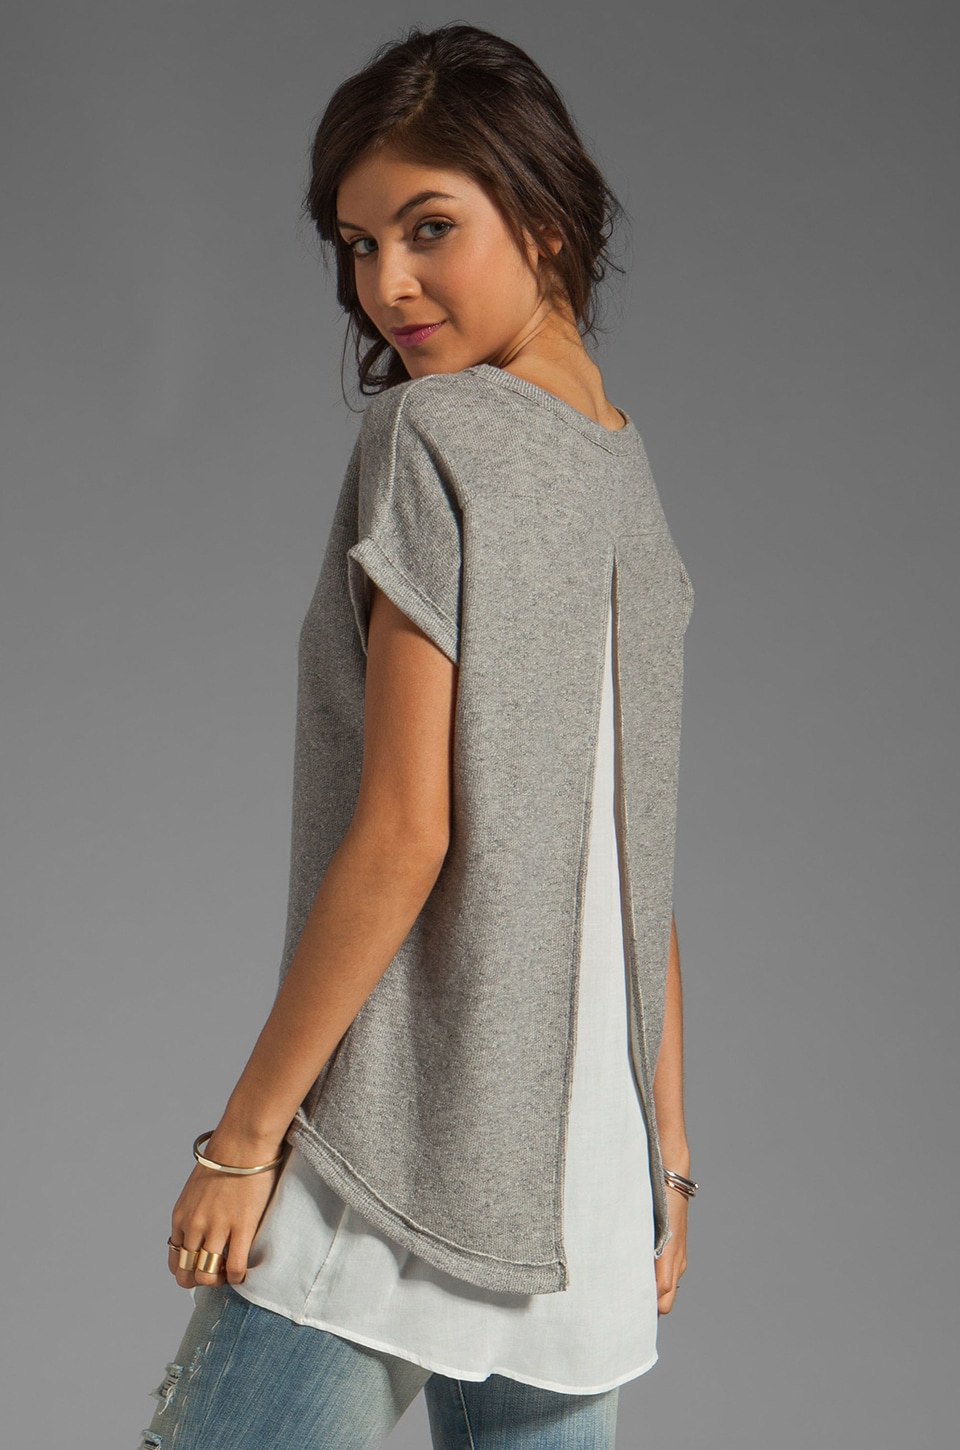 BY ZOE Rabat Top in Grey